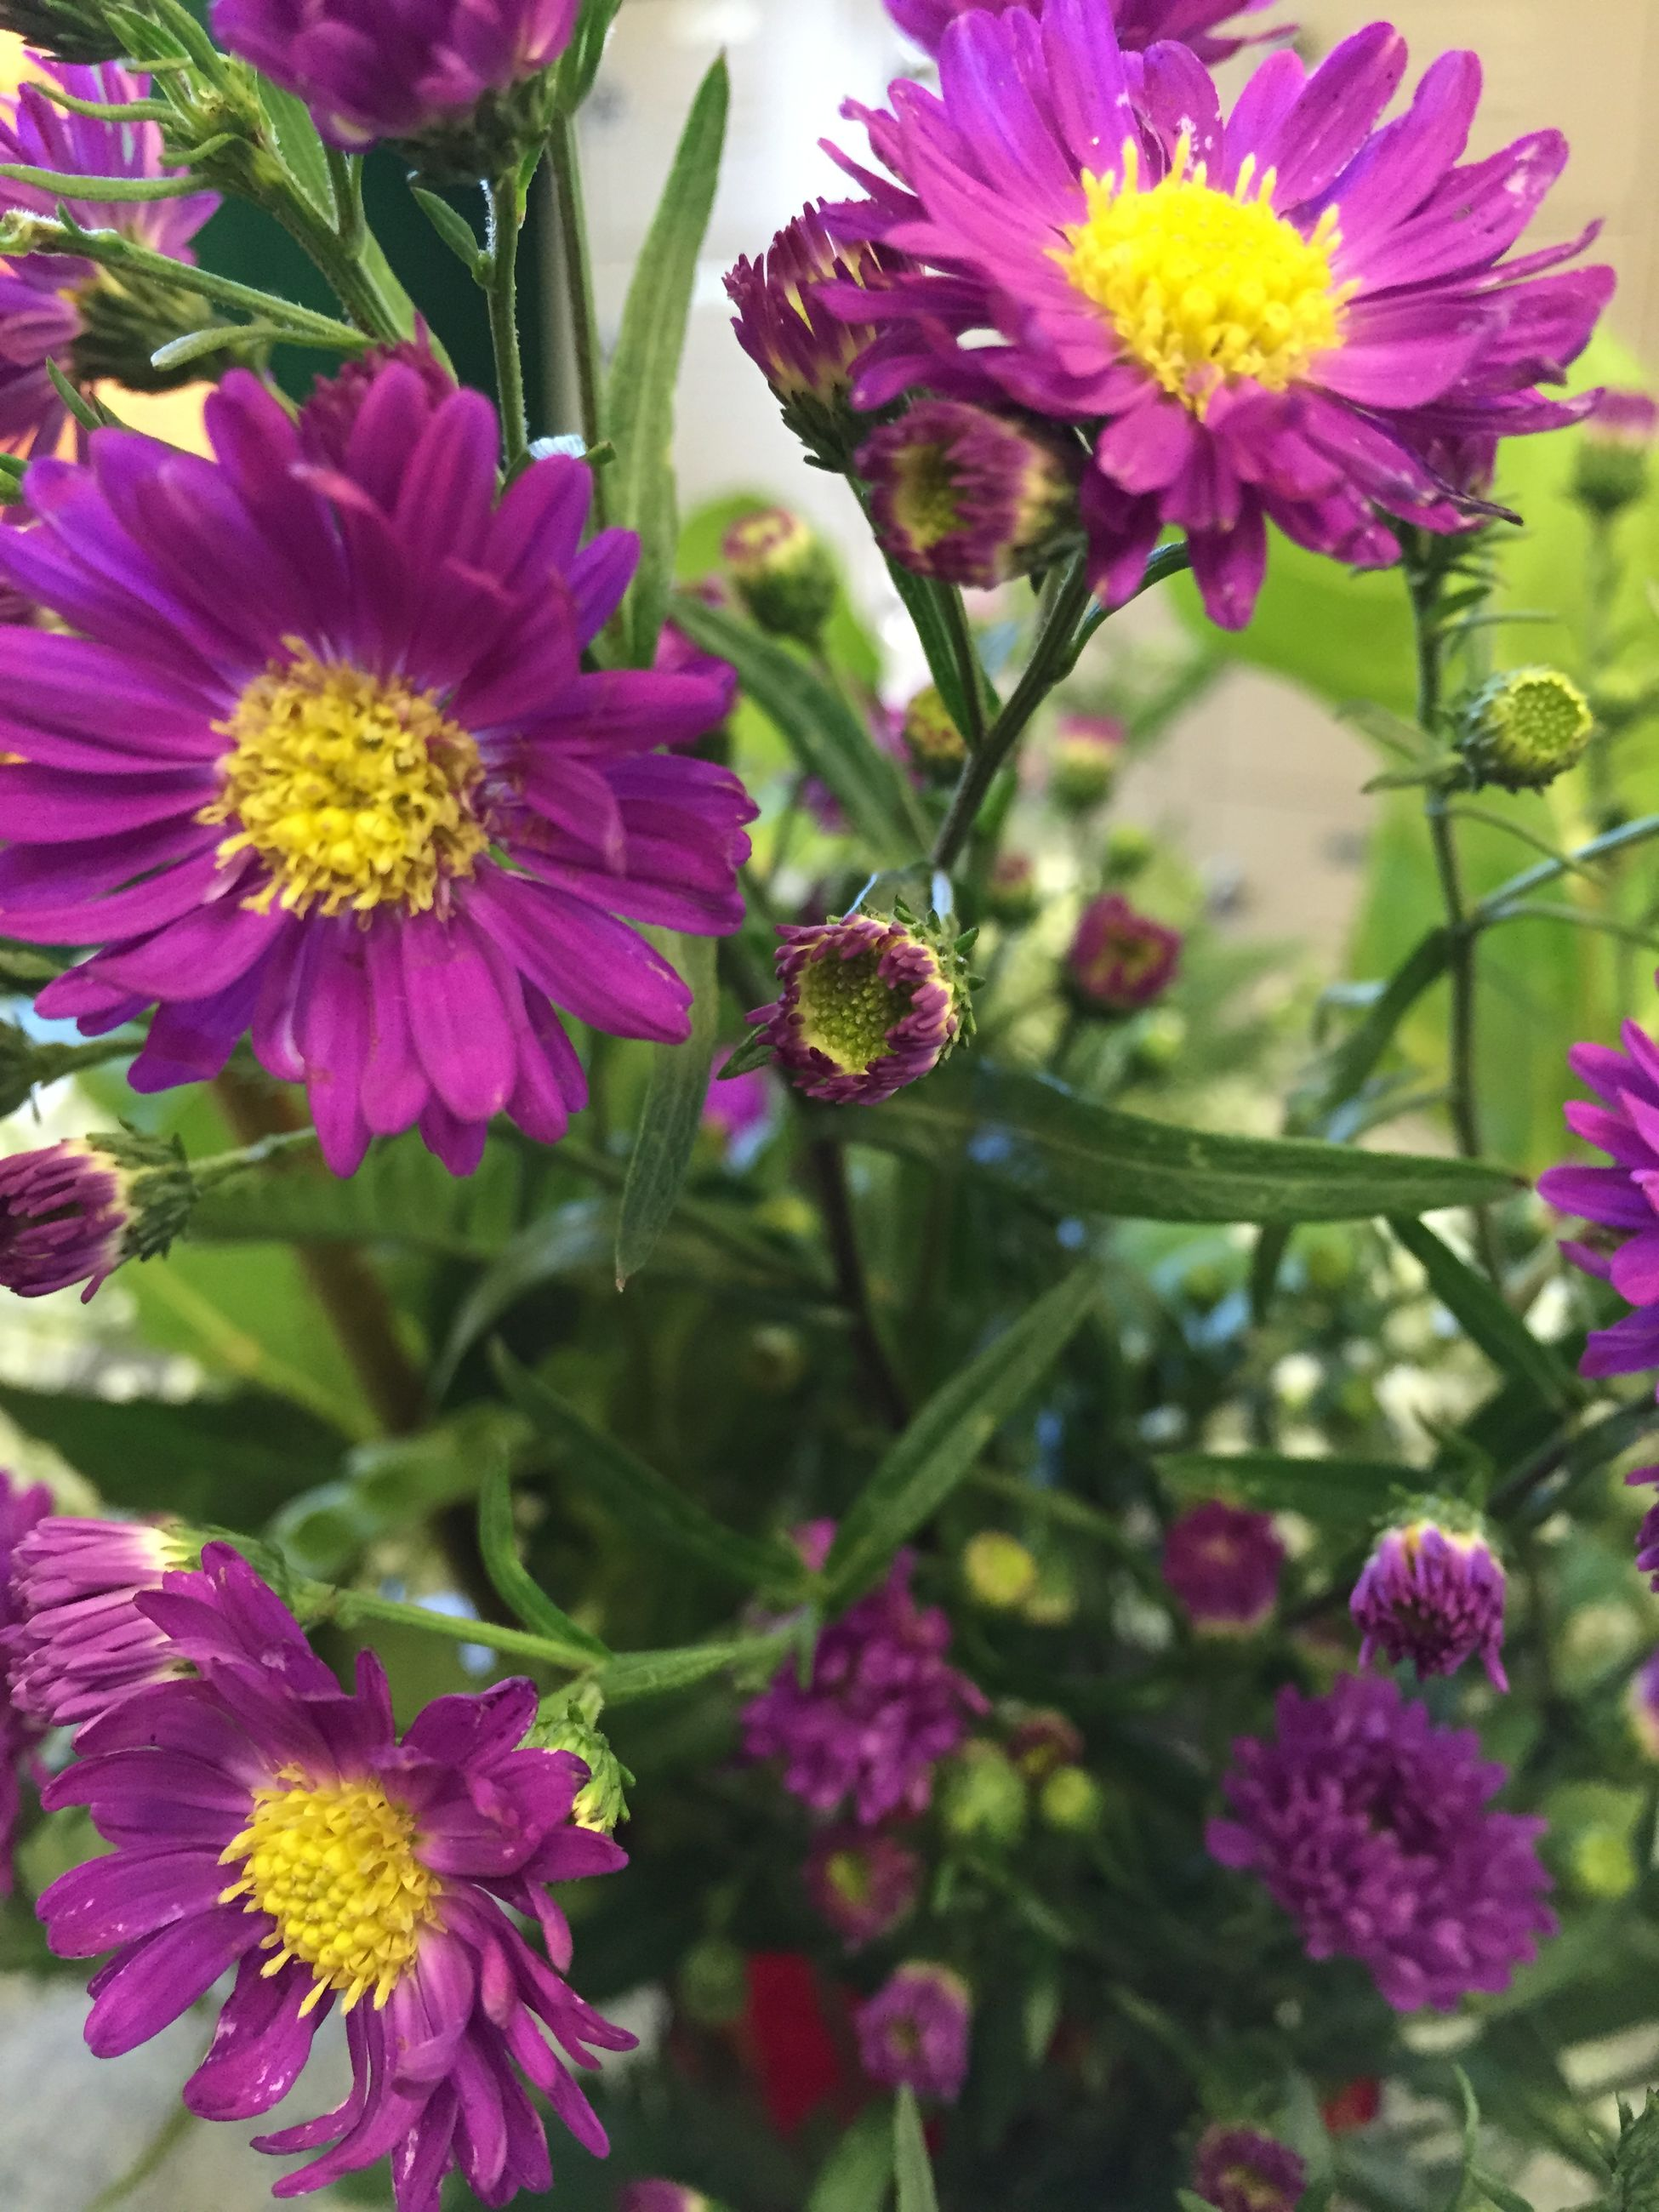 flower, freshness, petal, fragility, flower head, growth, beauty in nature, purple, insect, pink color, blooming, nature, plant, close-up, focus on foreground, in bloom, one animal, pollen, pollination, animal themes